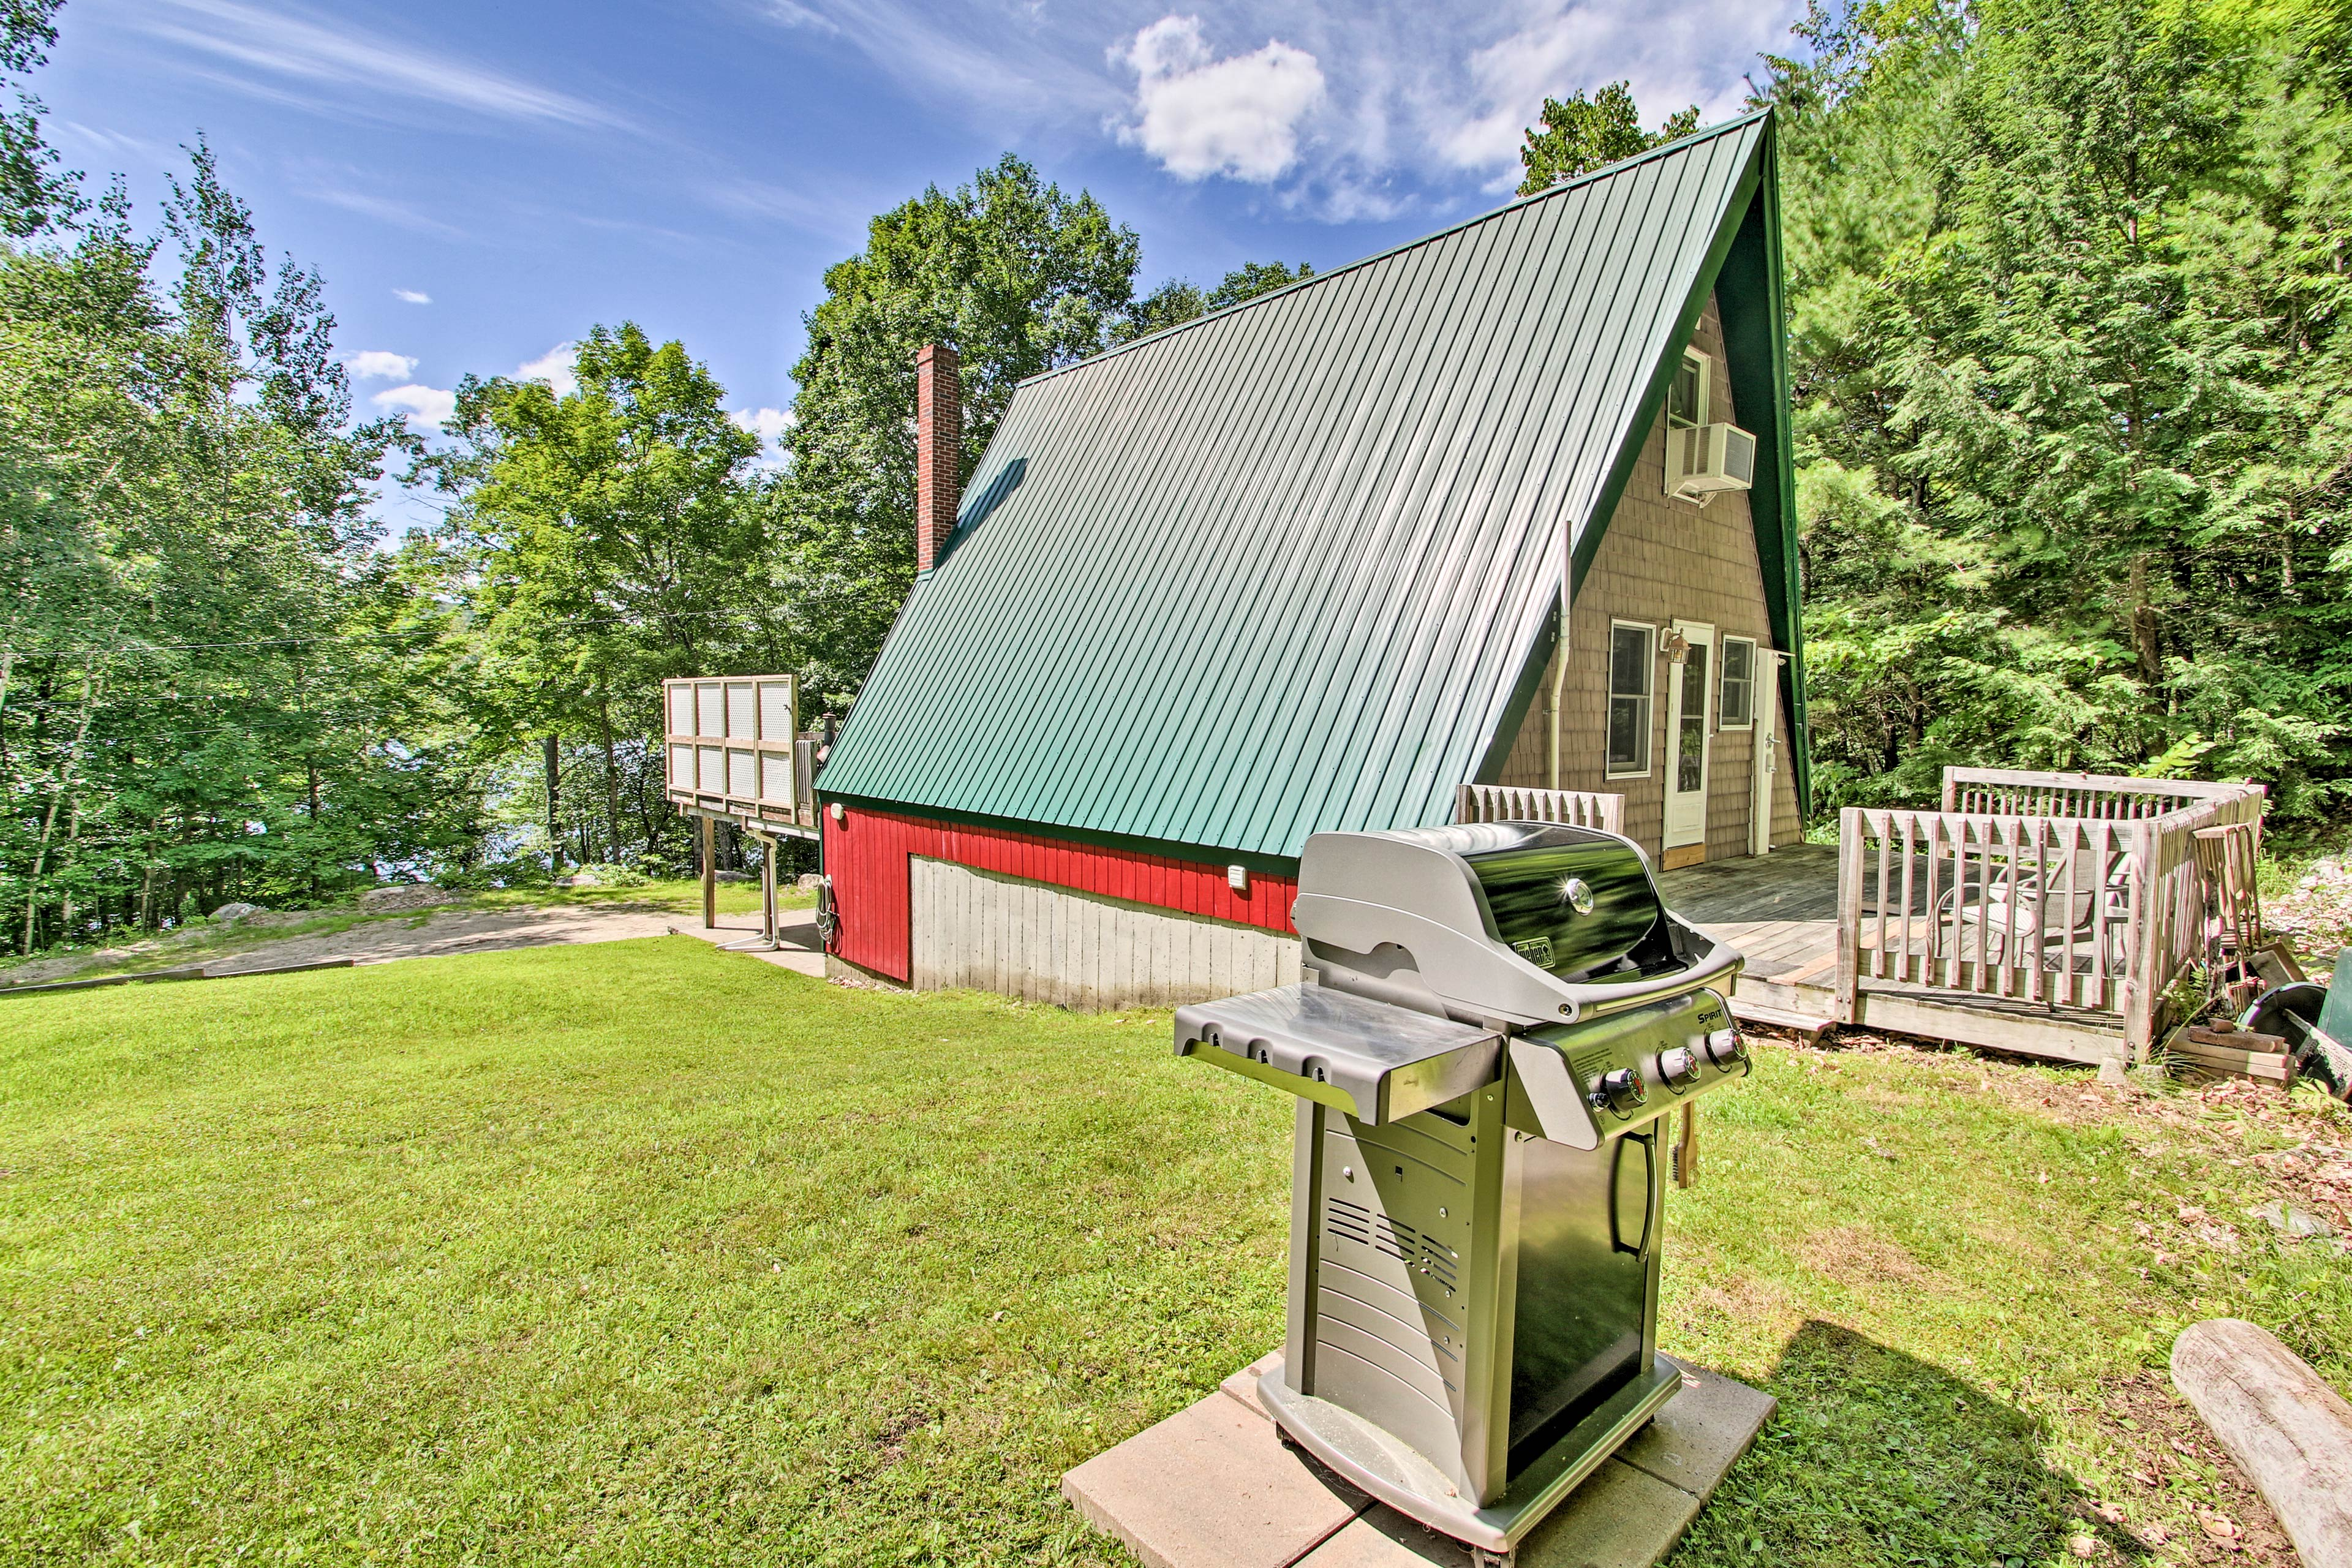 This lakefront home features a grill, fire pit, hot tub, kayaks, and more!